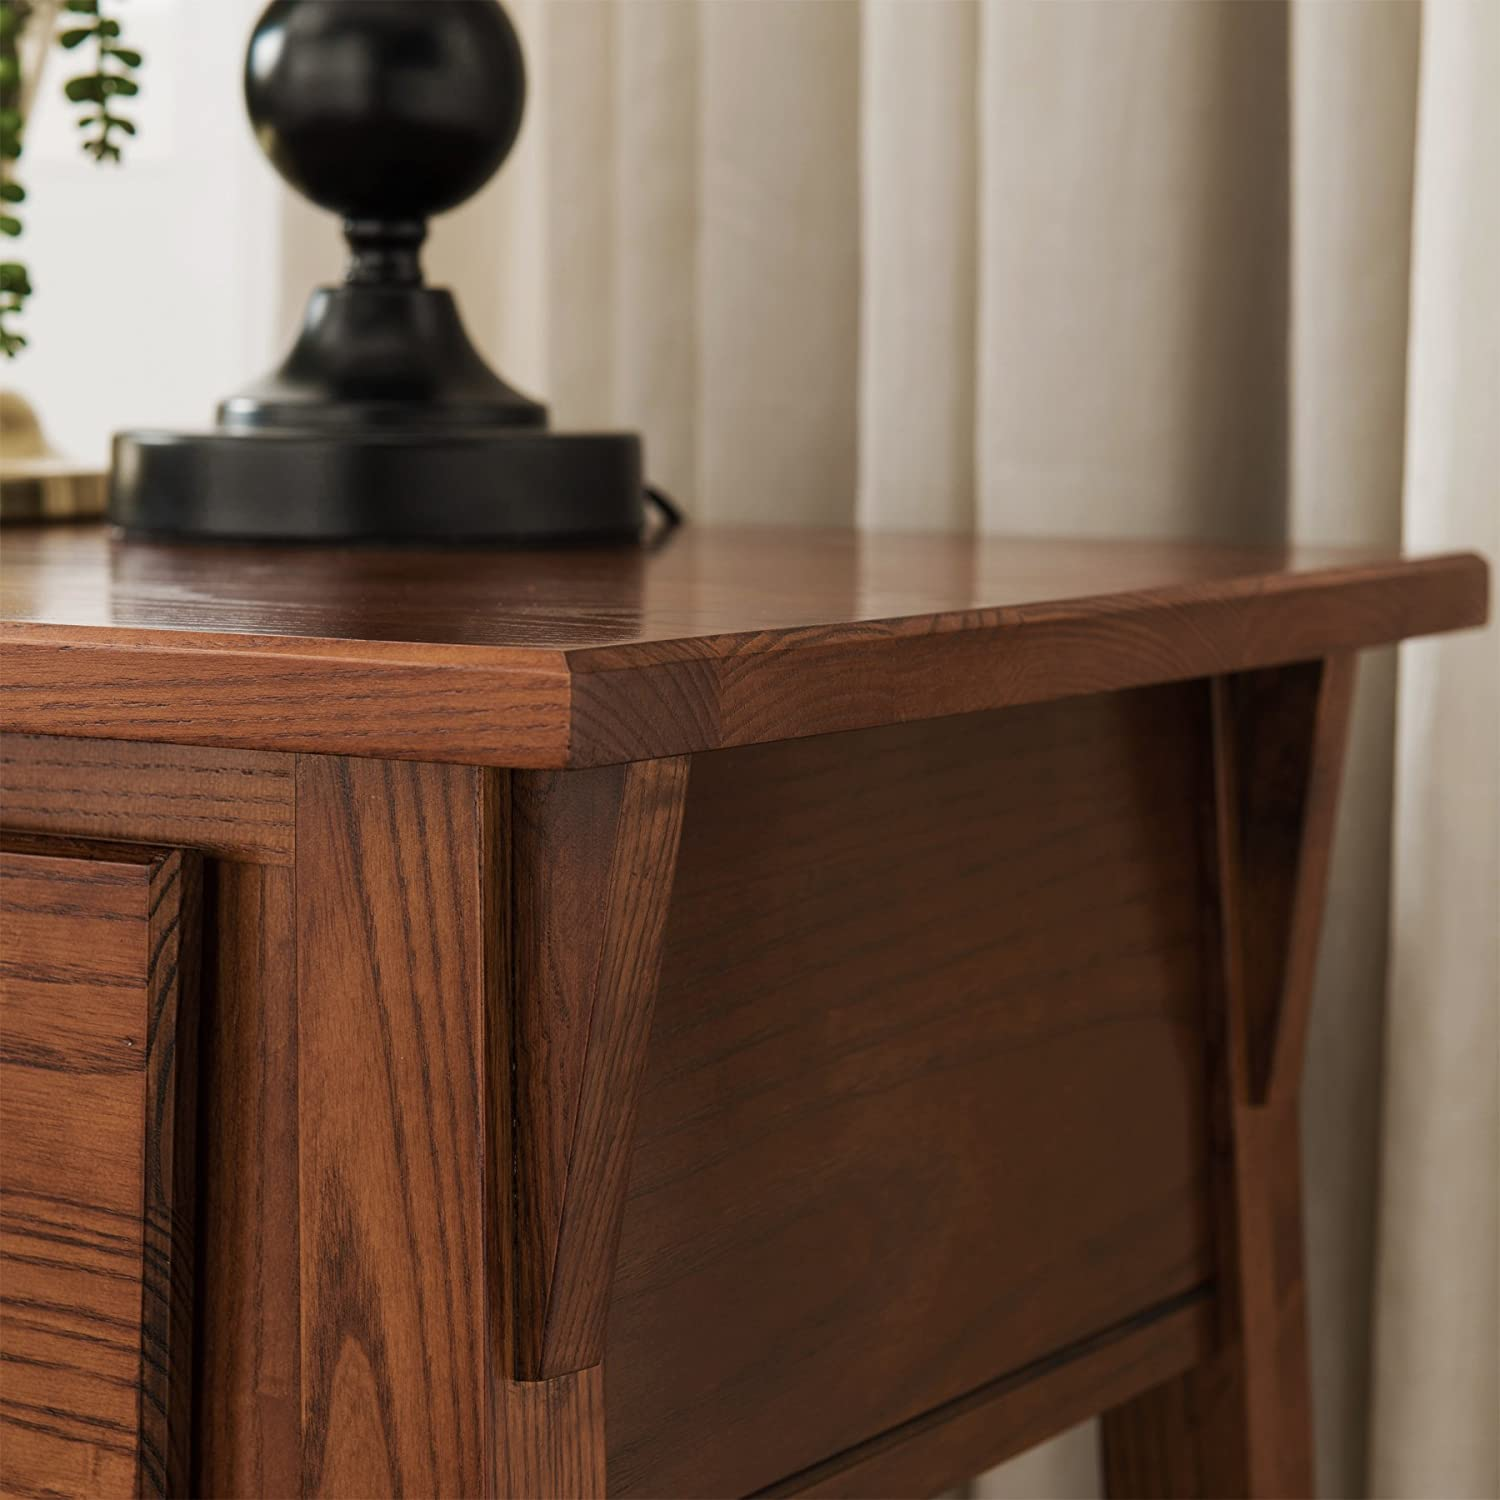 Small Russet Leick Favorite Finds End Table